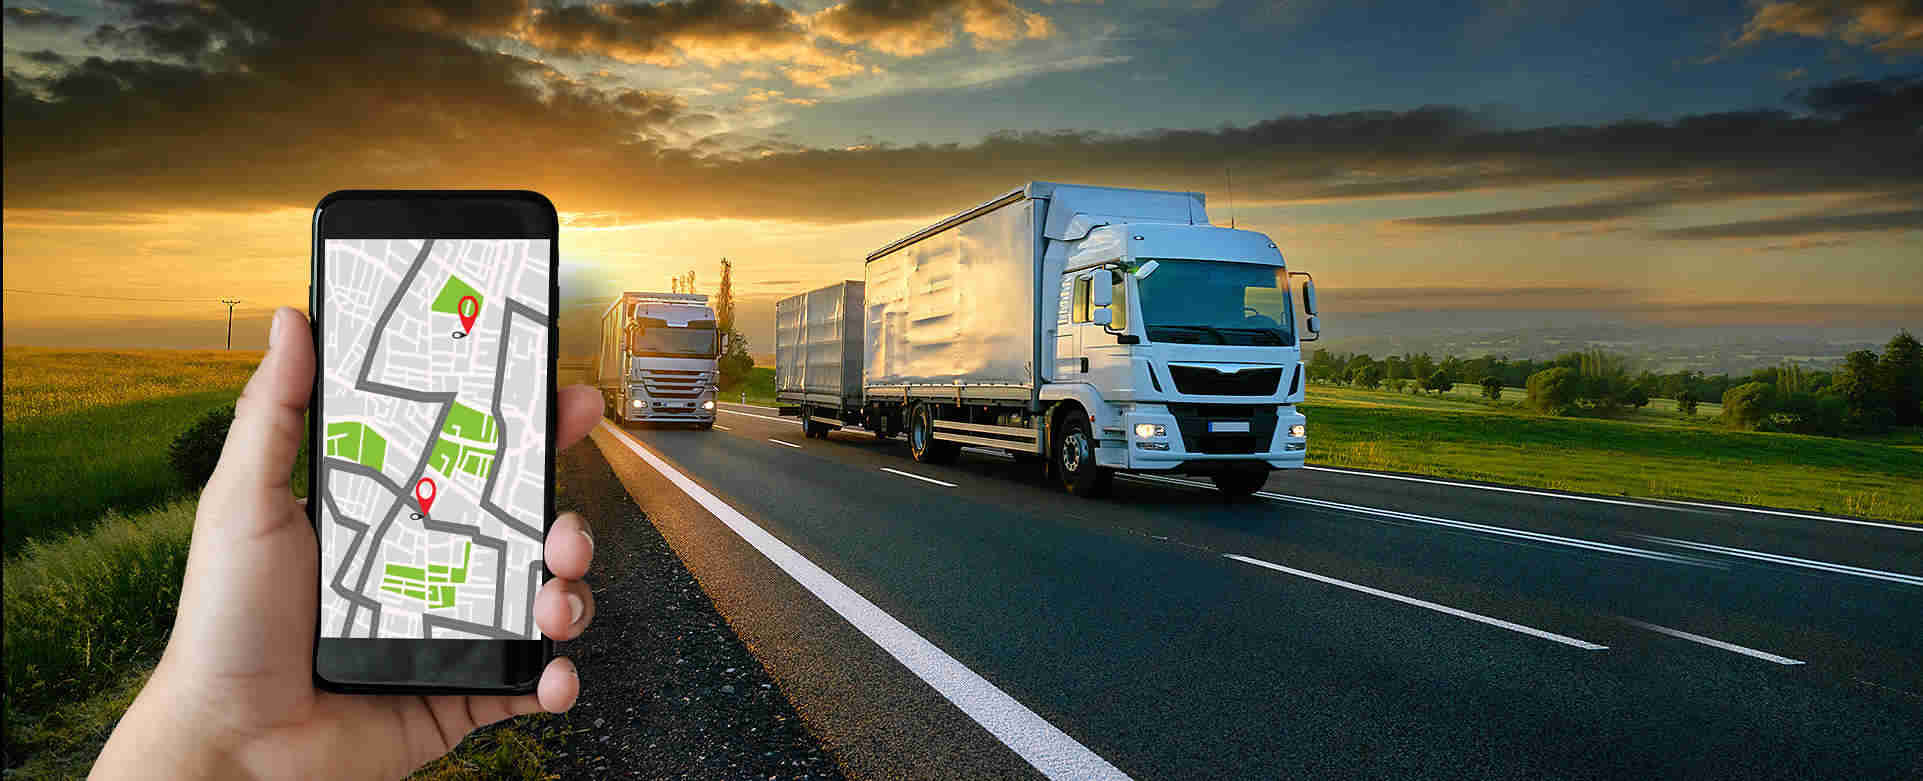 GPS Tracking Systems for Vehicles in India